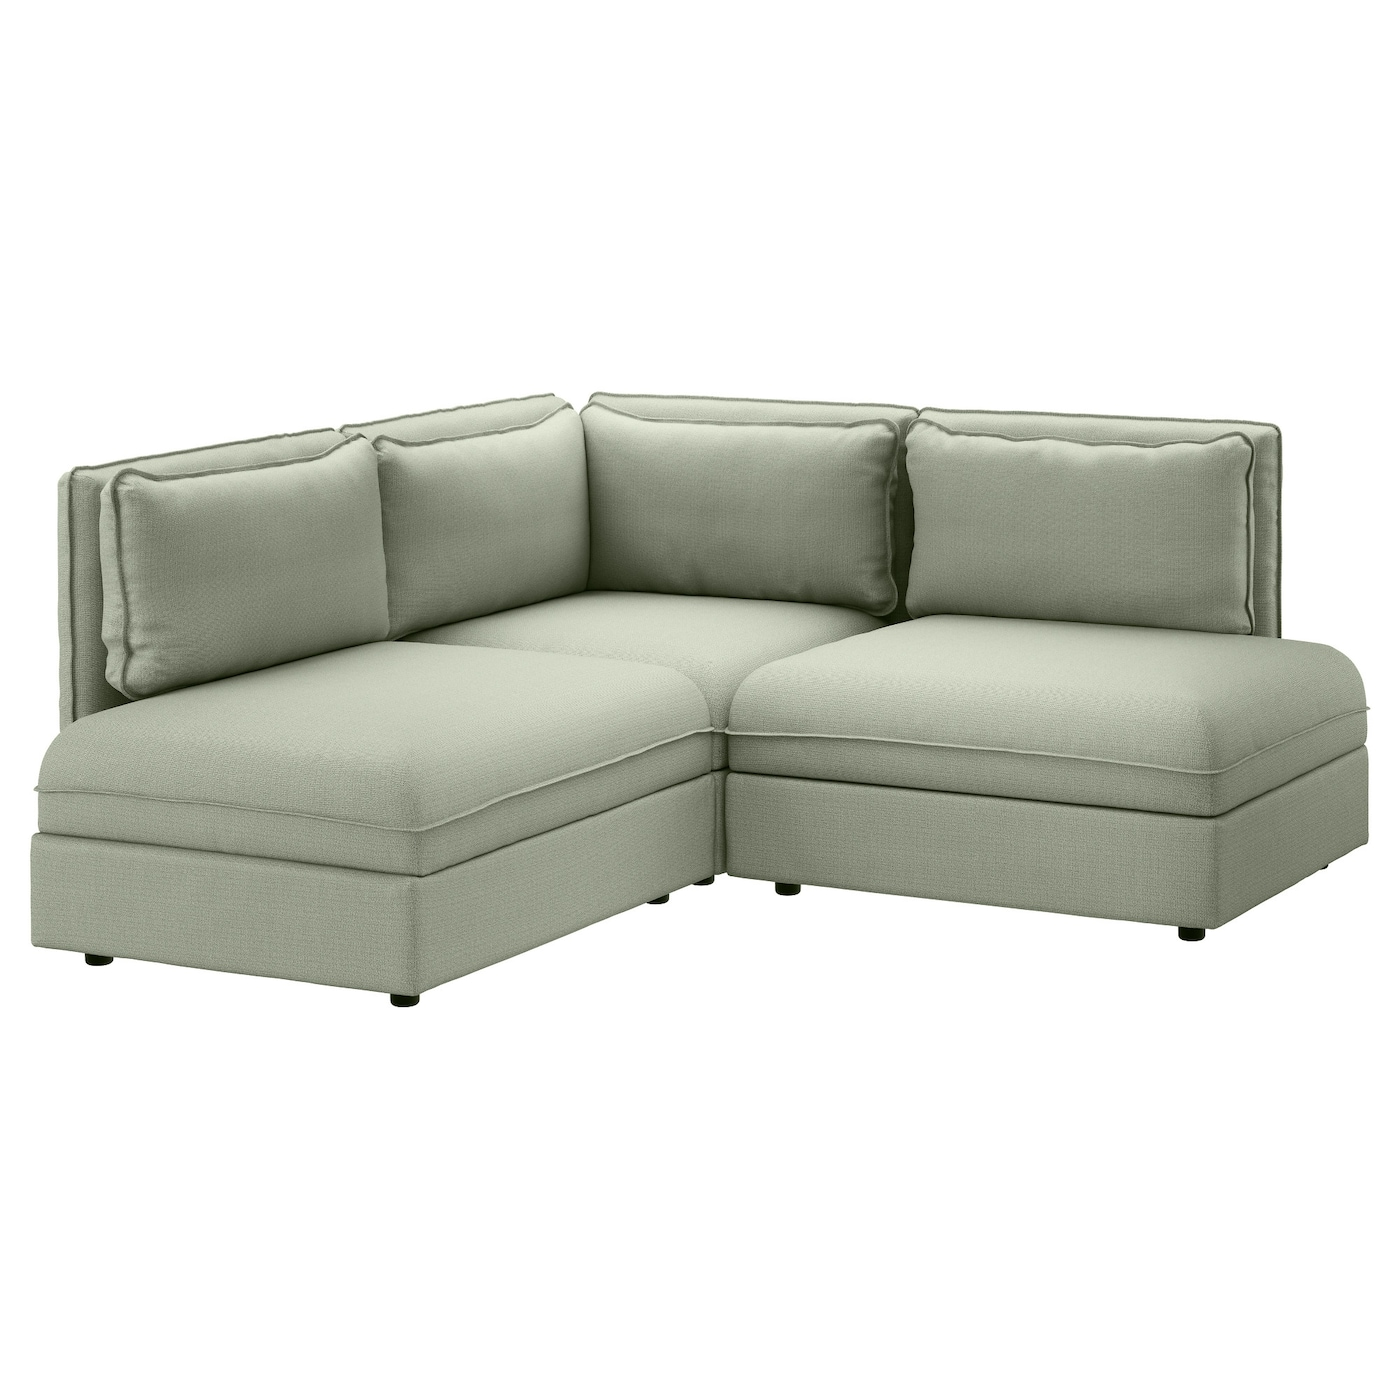 Vallentuna 3 seat corner sofa hillared green ikea for Ikea couch planer